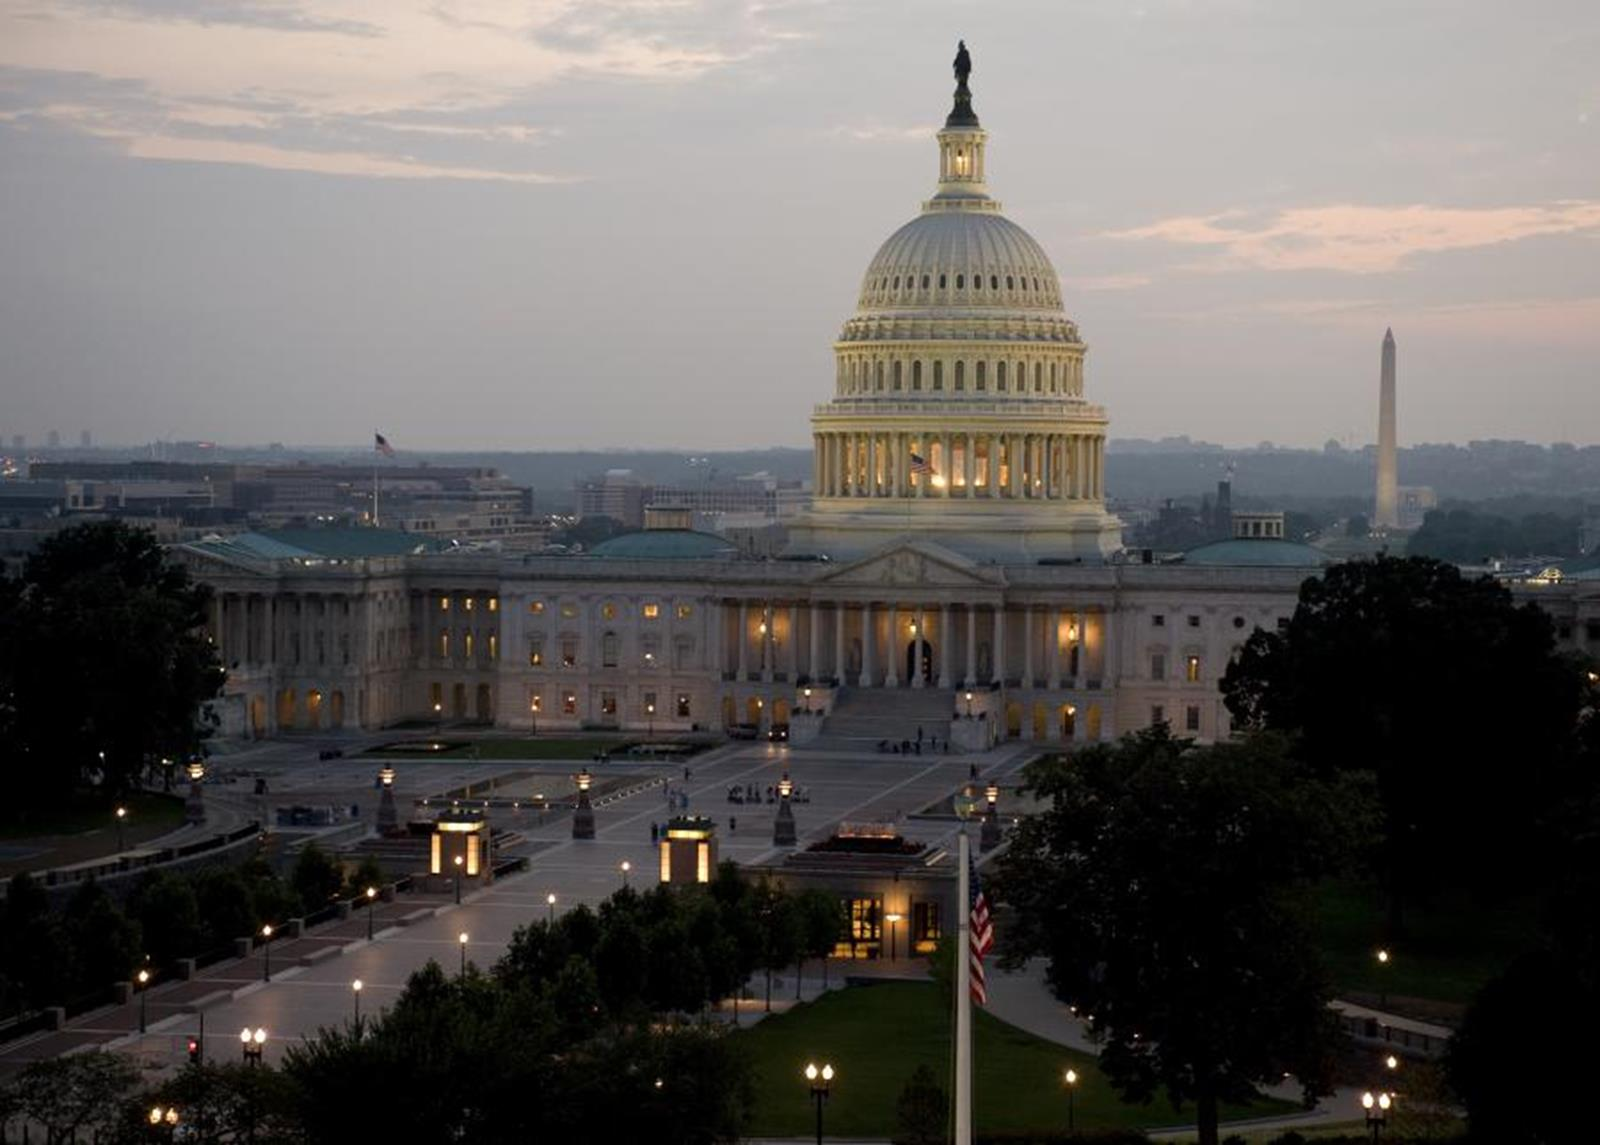 A Trip To Washington Dc Is A Must For Student Groups